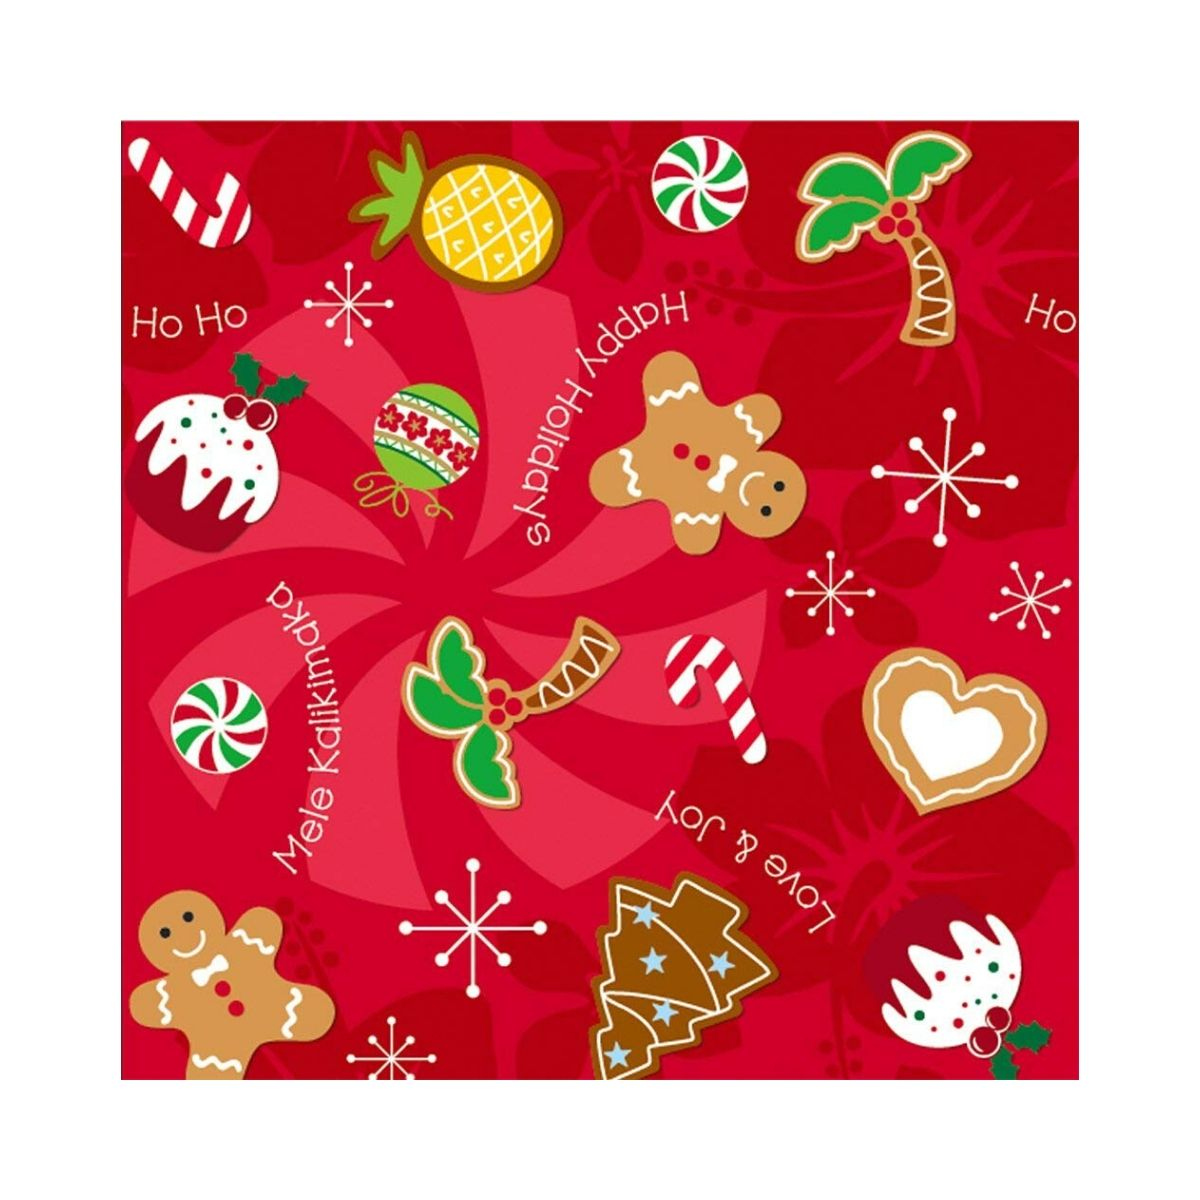 Kid/'s Wrapping Paper Red Scooter Holiday Gift Unisex Gift Wrap Christmas Gift Wrap Wrapping Sheets Cute Wrapping Paper Gift for Boy